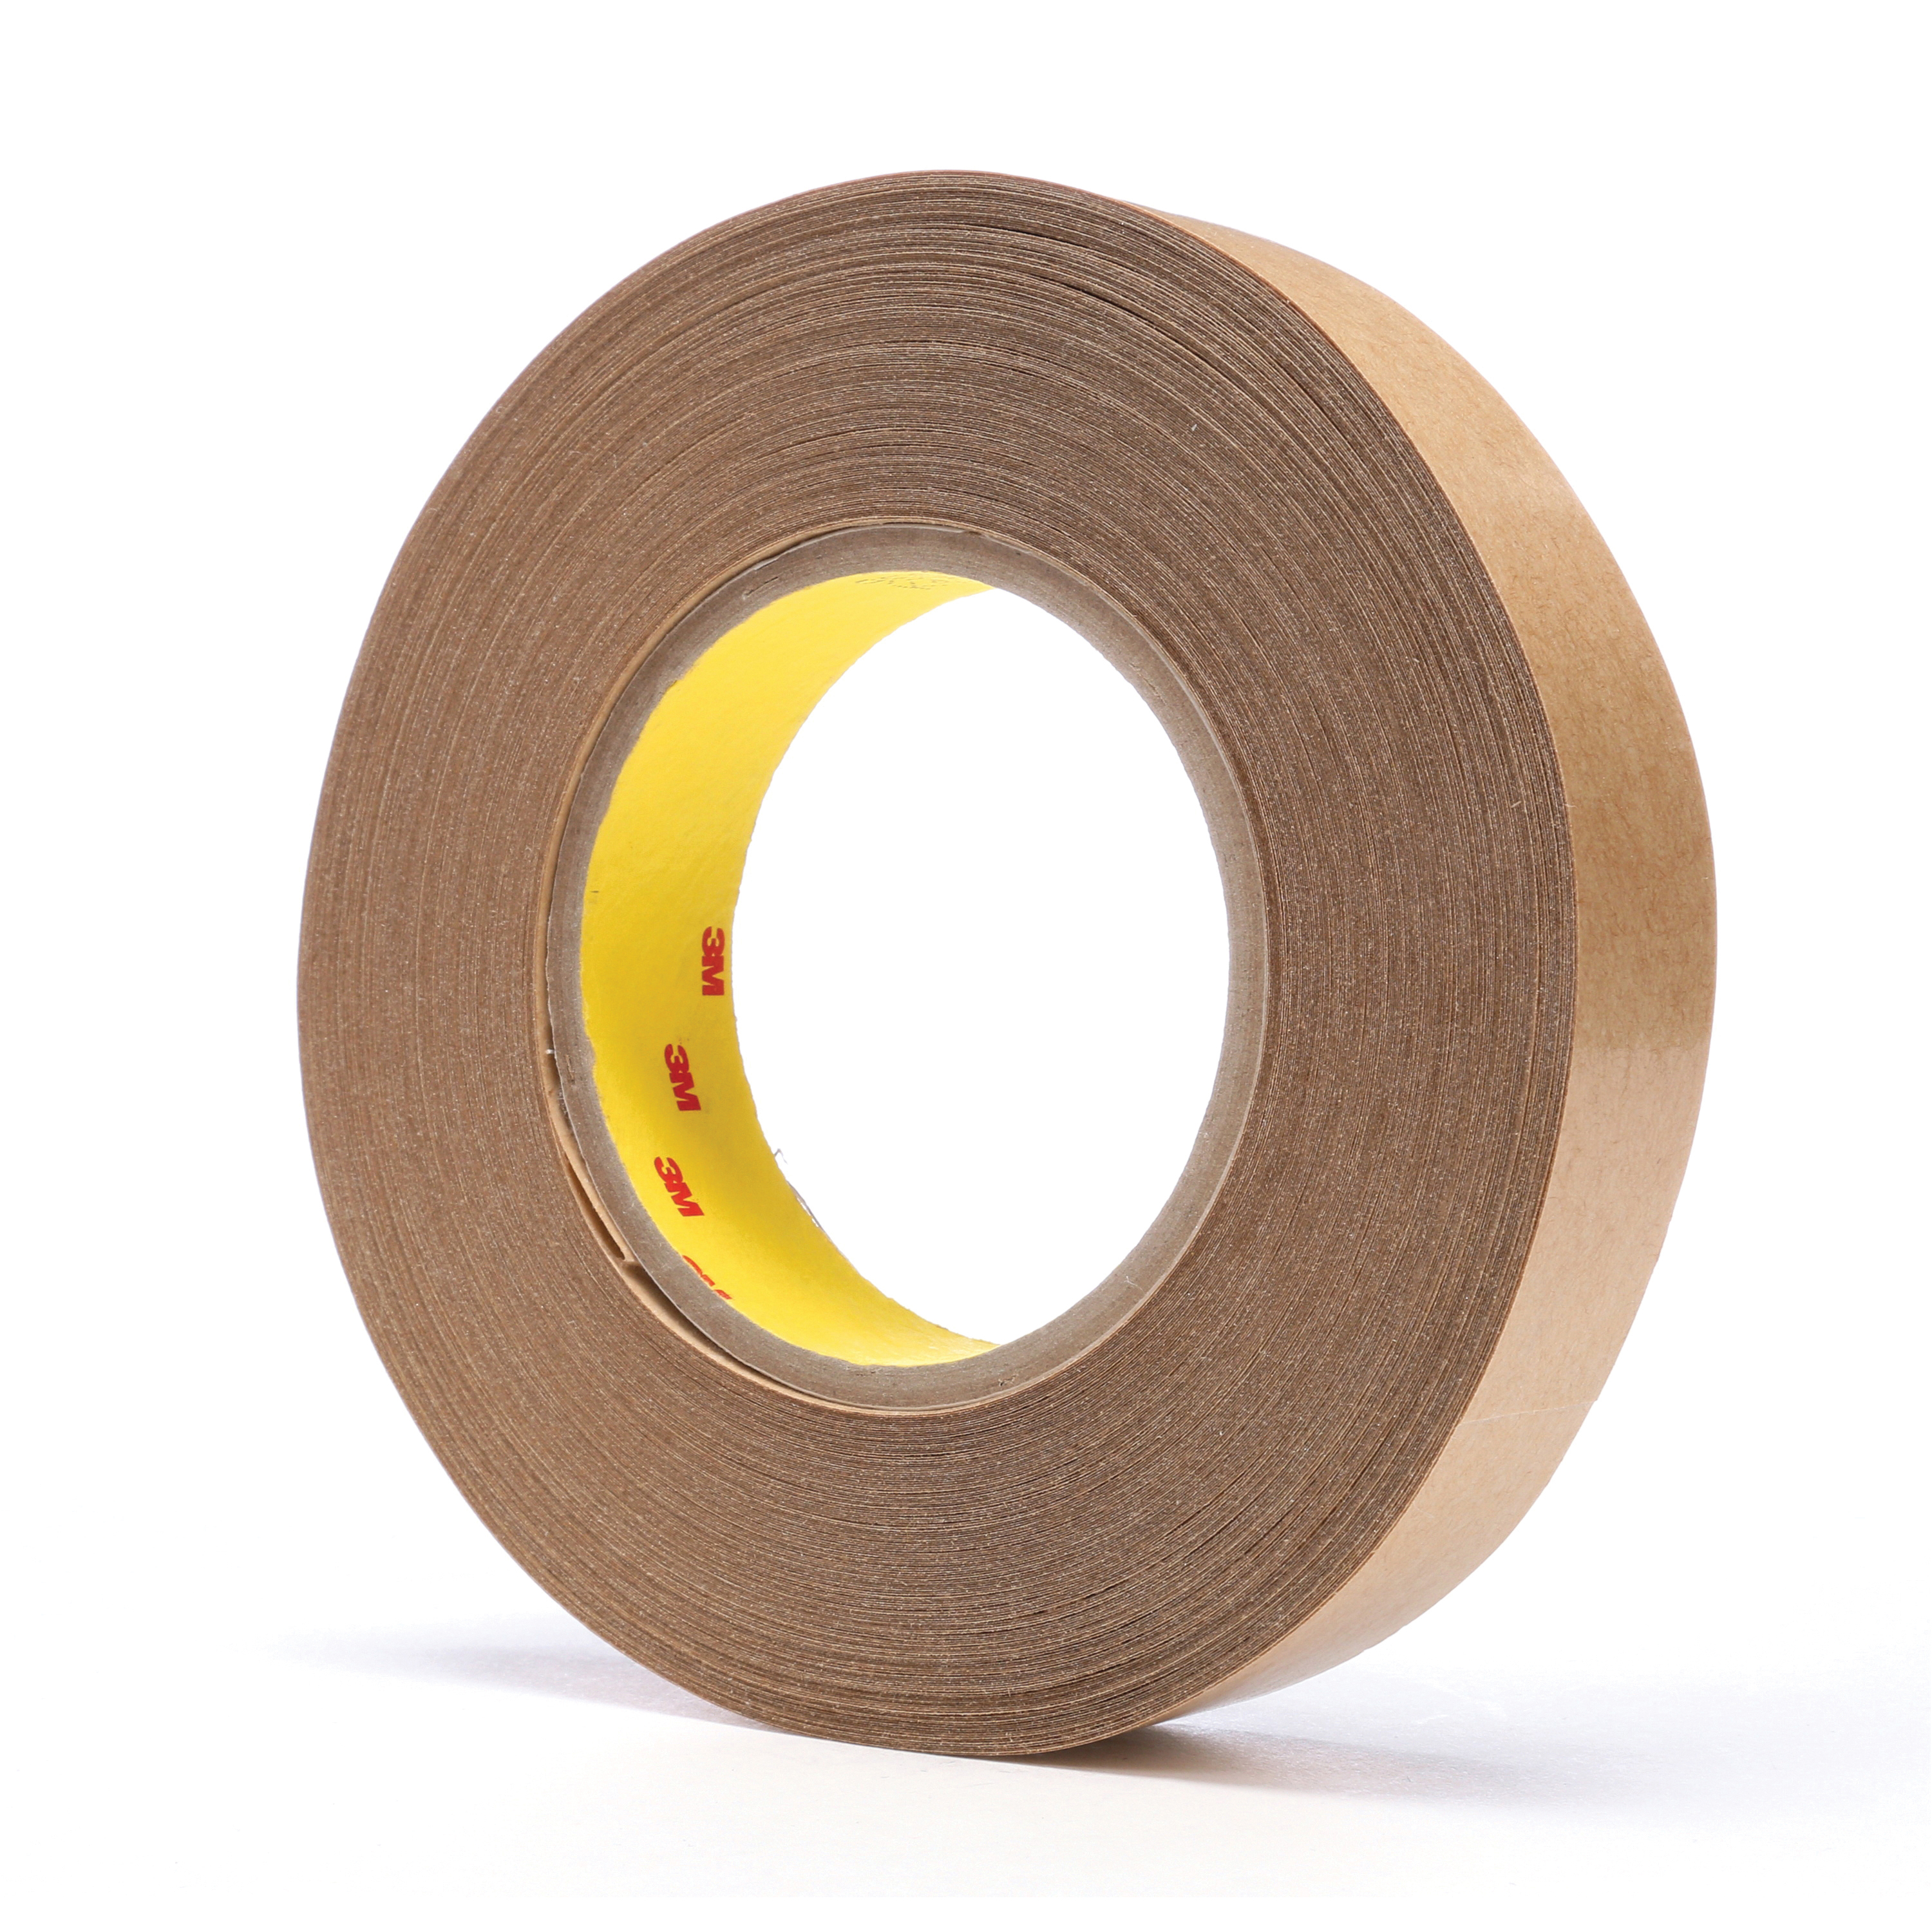 3M™ 021200-04850 General Purpose High Tack Adhesive Transfer Tape, 60 yd L x 1 in W, 8.5 mil THK, 5 mil 300 Acrylic Adhesive, Clear